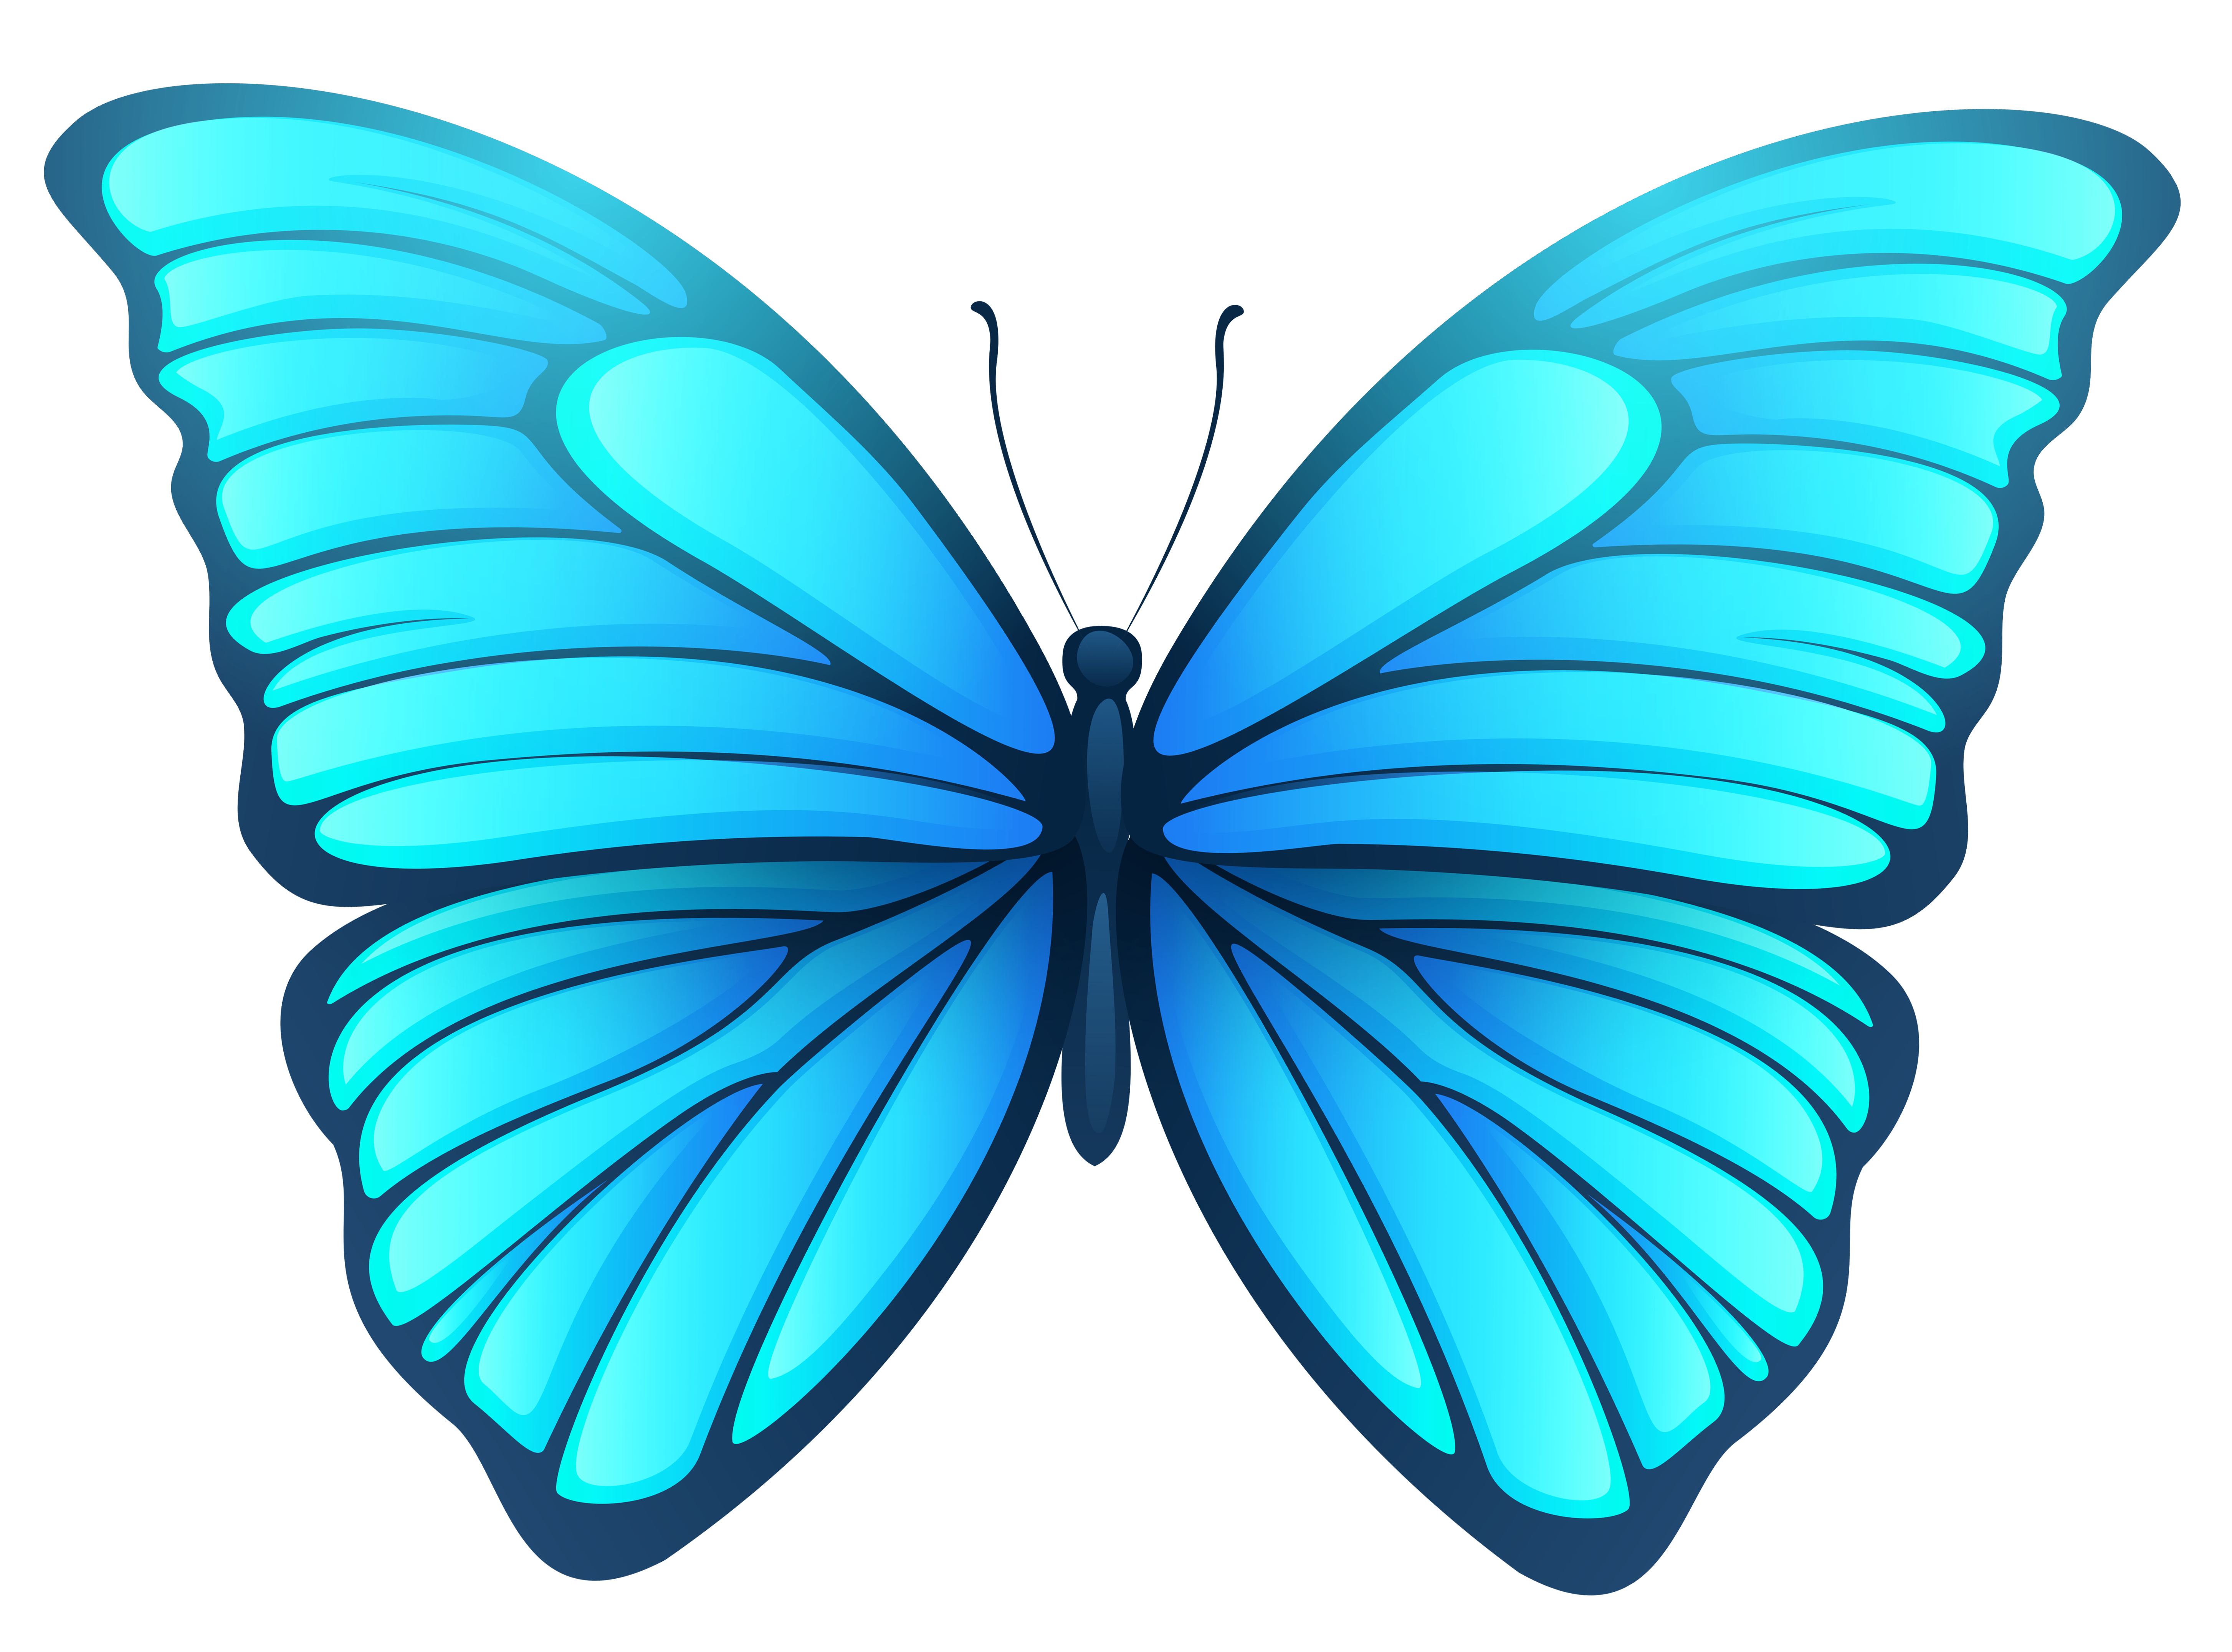 Butterfly png images. Image gallery yopriceville high